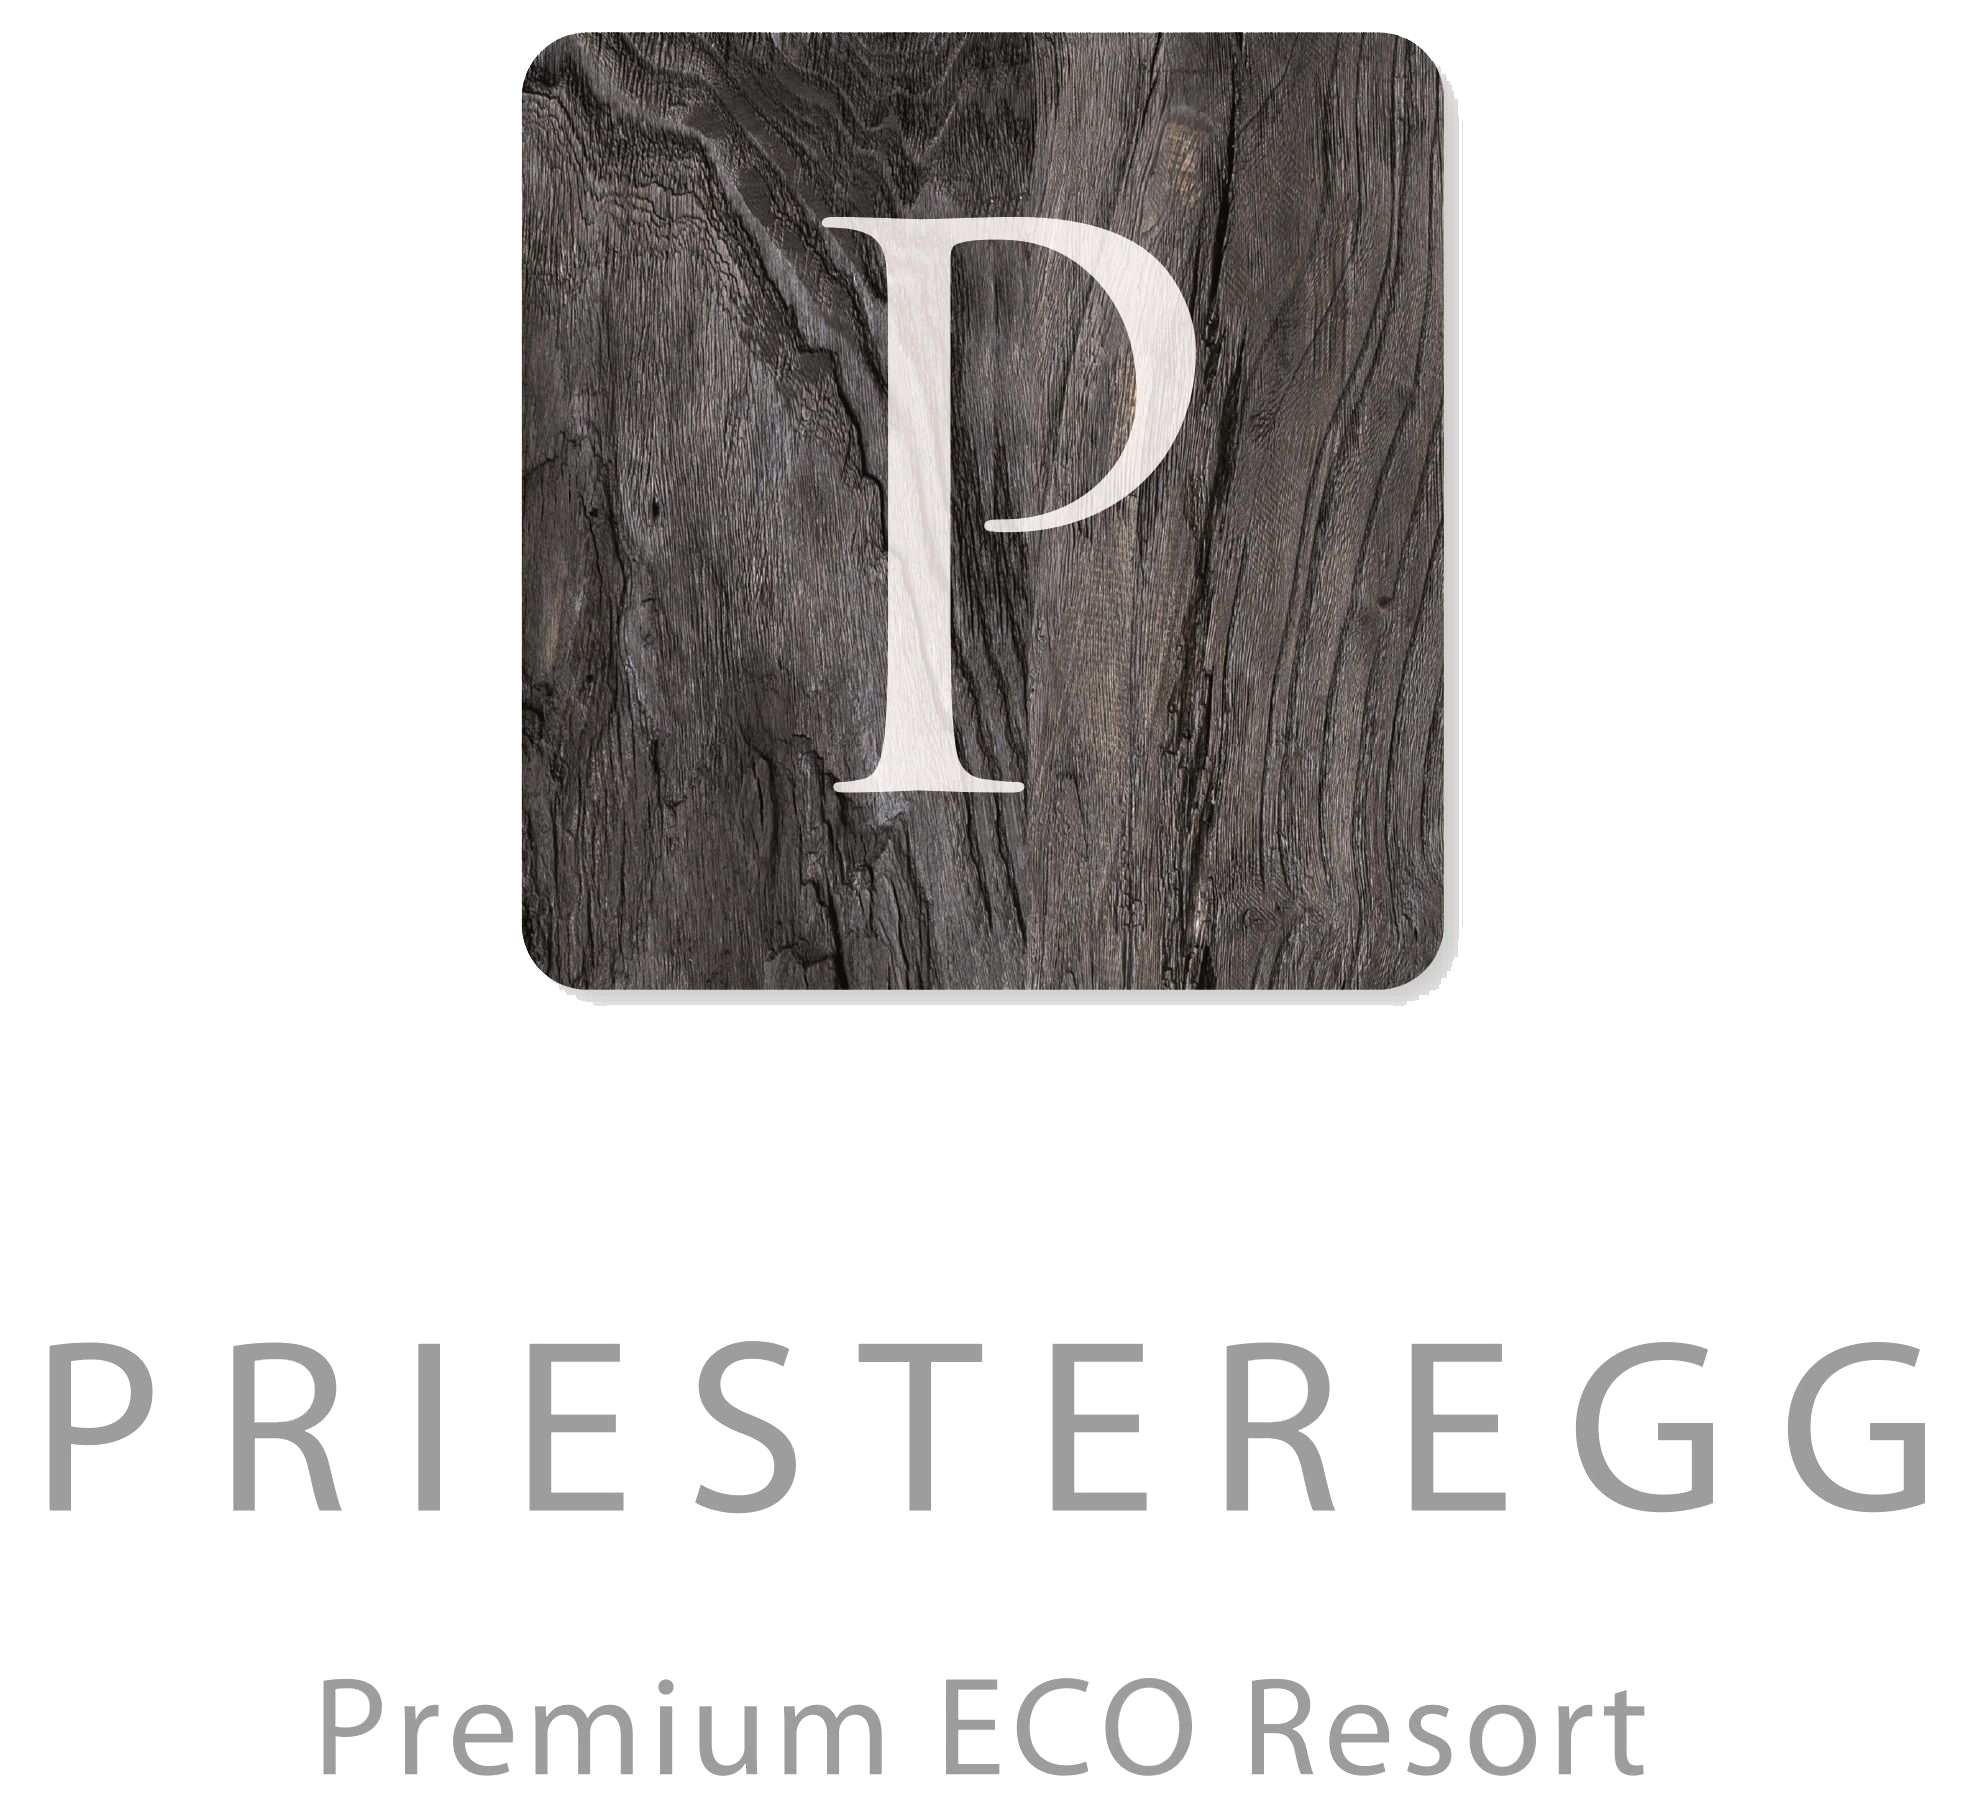 Priesteregg Resort